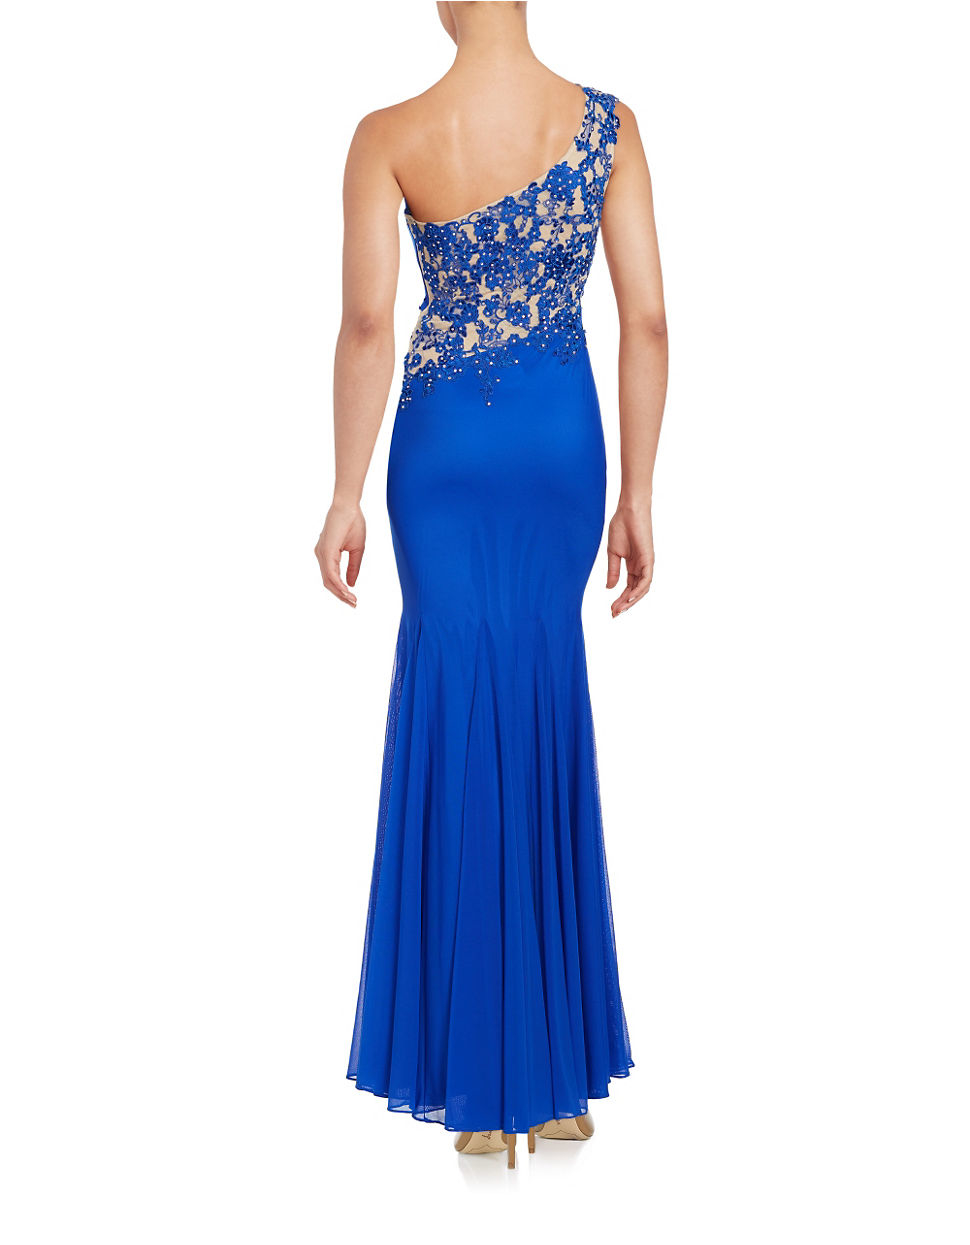 Lyst - Xscape One Shoulder Embroidered Gown